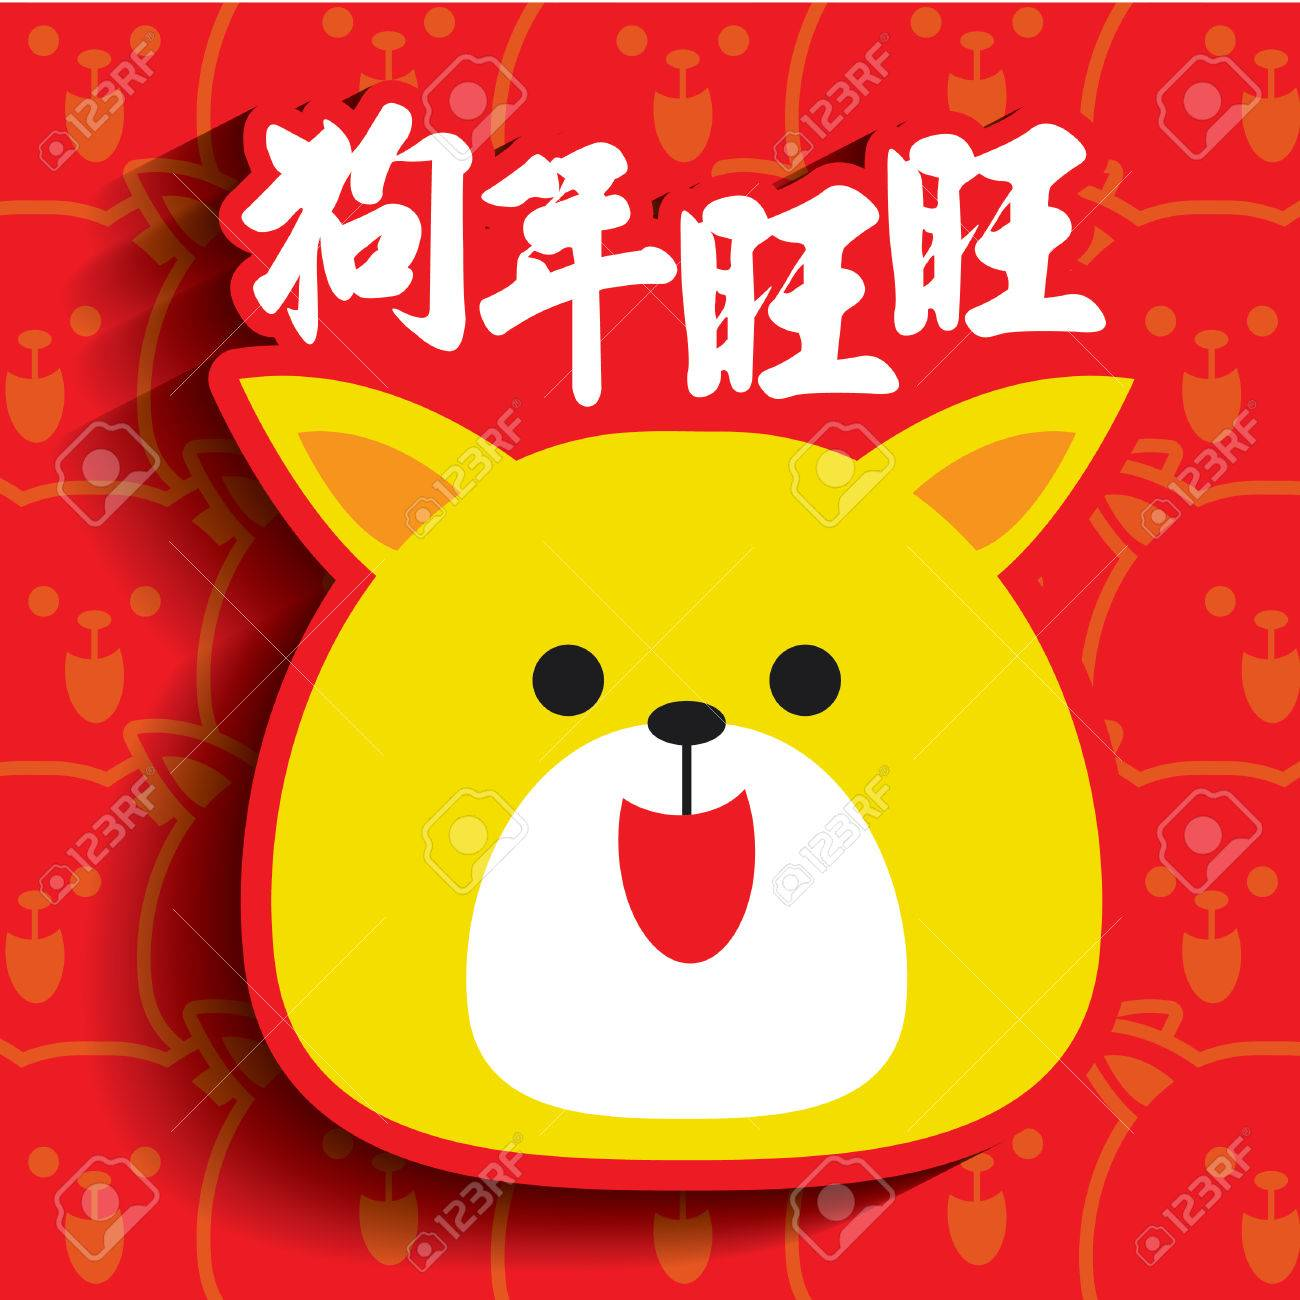 2018 chinese new year greeting card illustration of dog puppy caption